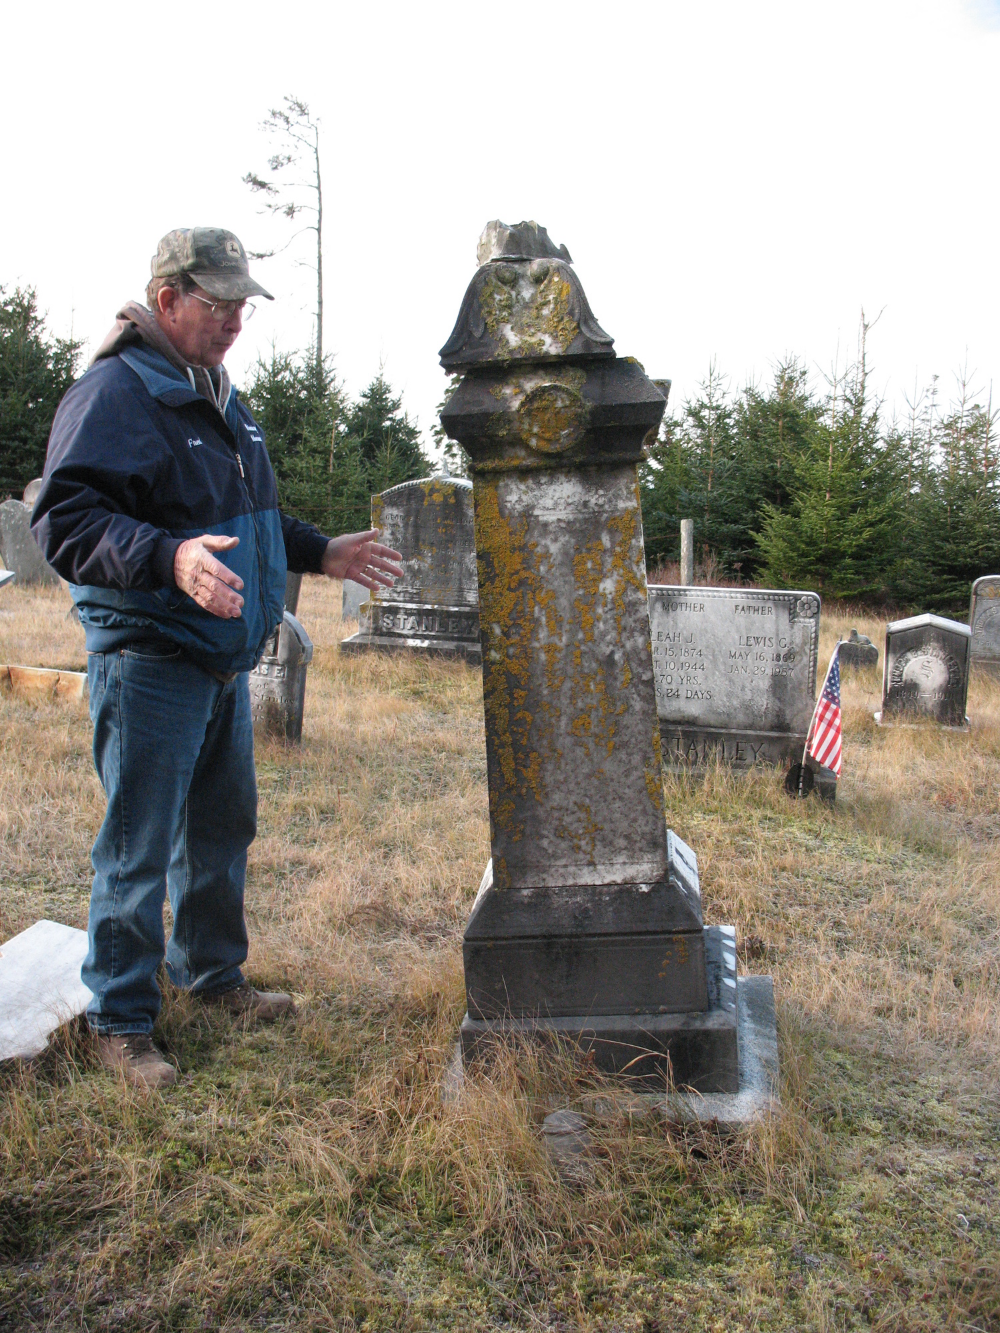 Fred Wieninger examines the leaning, broken Meltiah Richardson 1901 monument. Note the broken top-piece lying in the grass by the base.